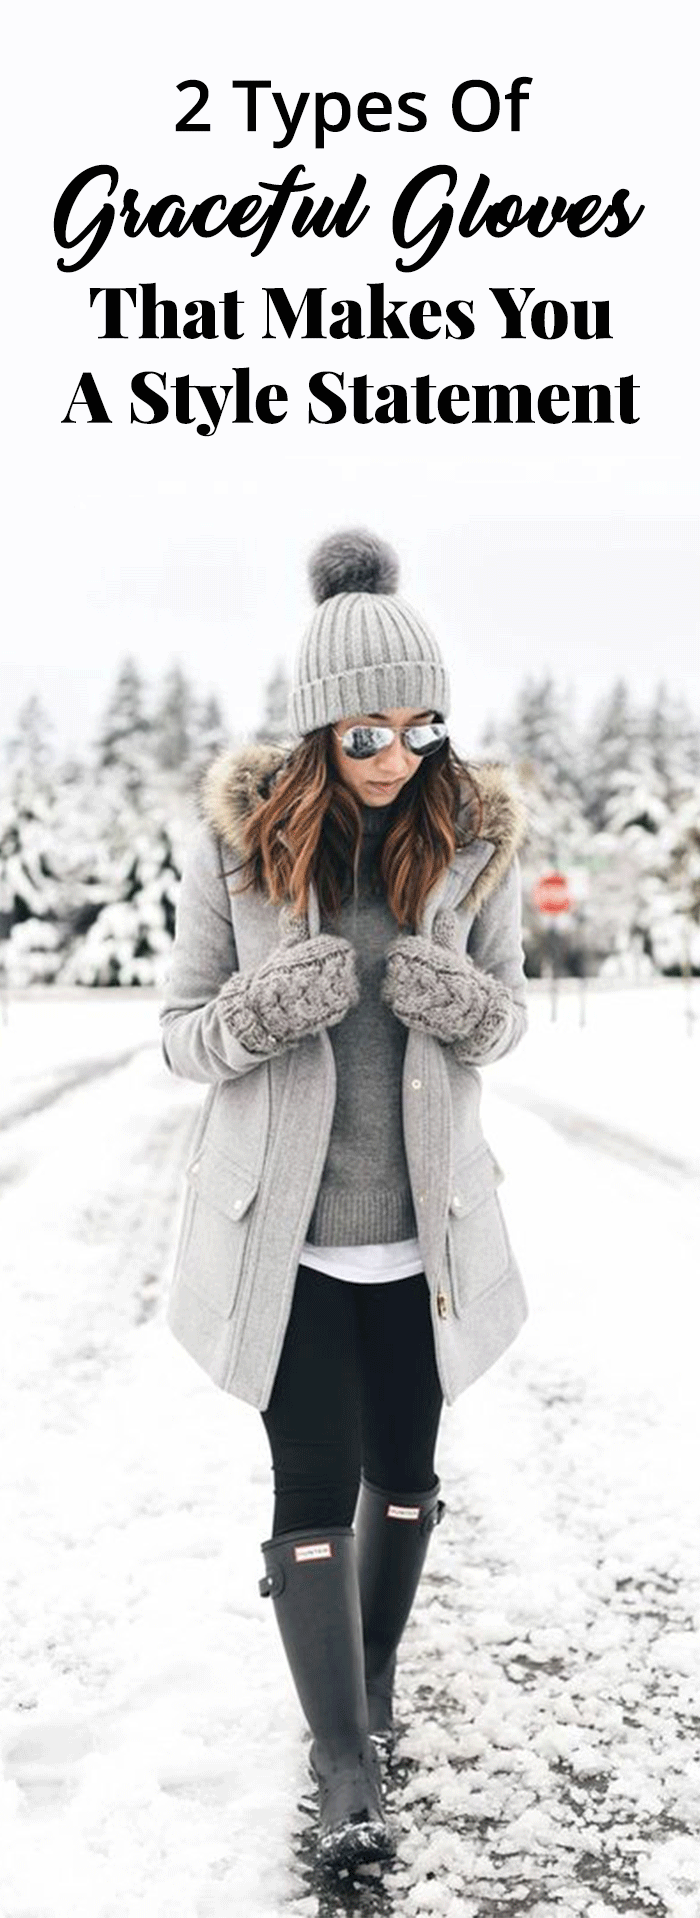 2 Types Of Graceful Gloves That Makes You A Style Statement